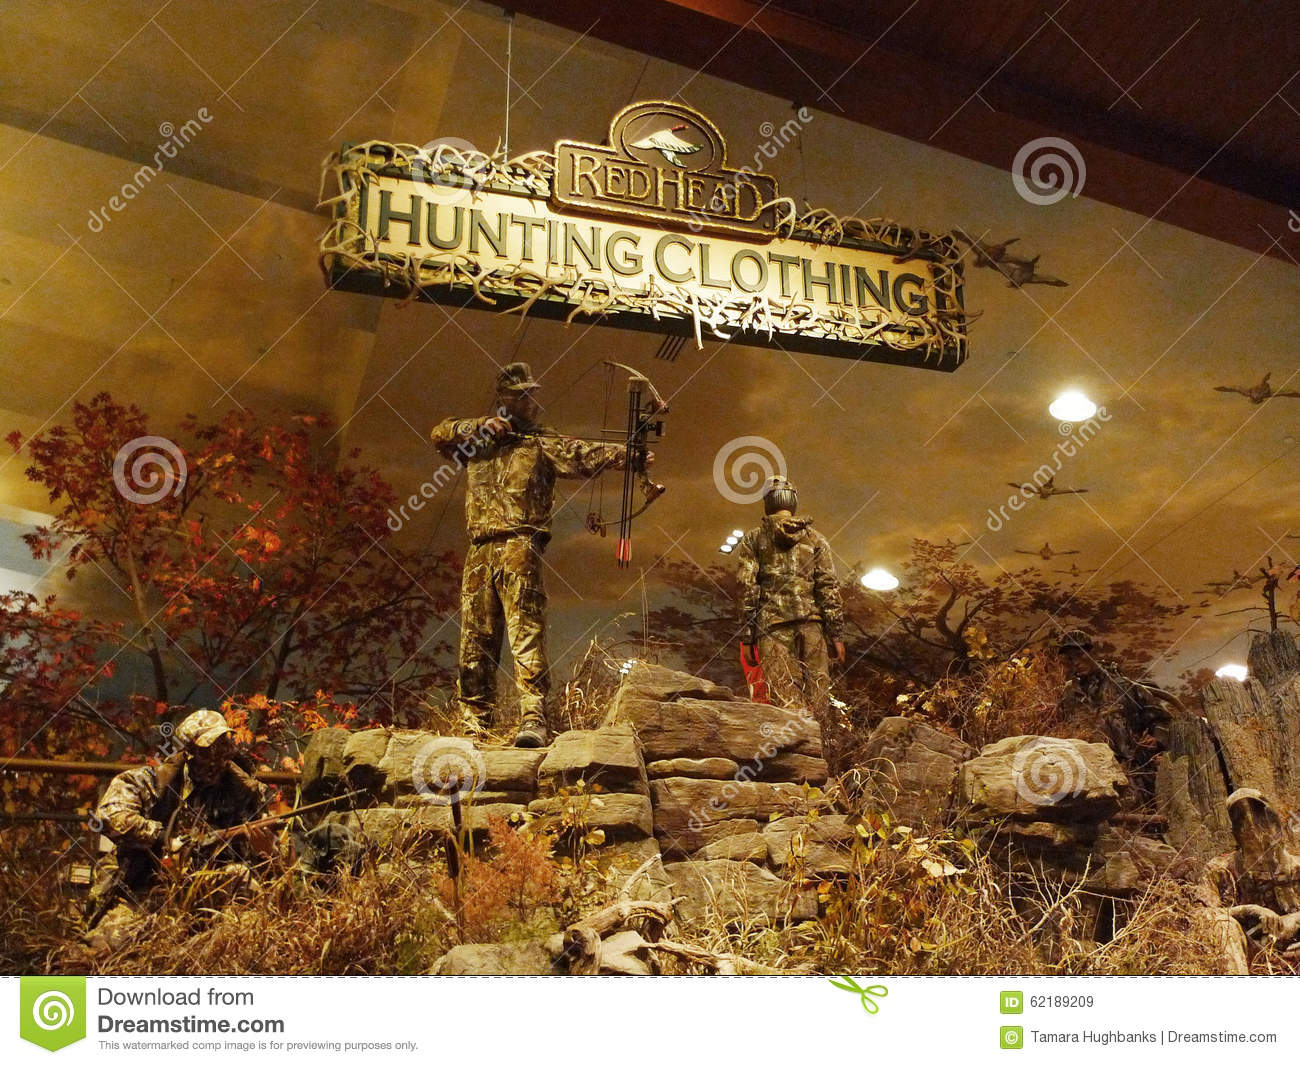 Bass pro shops springfield mo display clothing editorial for Bass pro shop fishing license